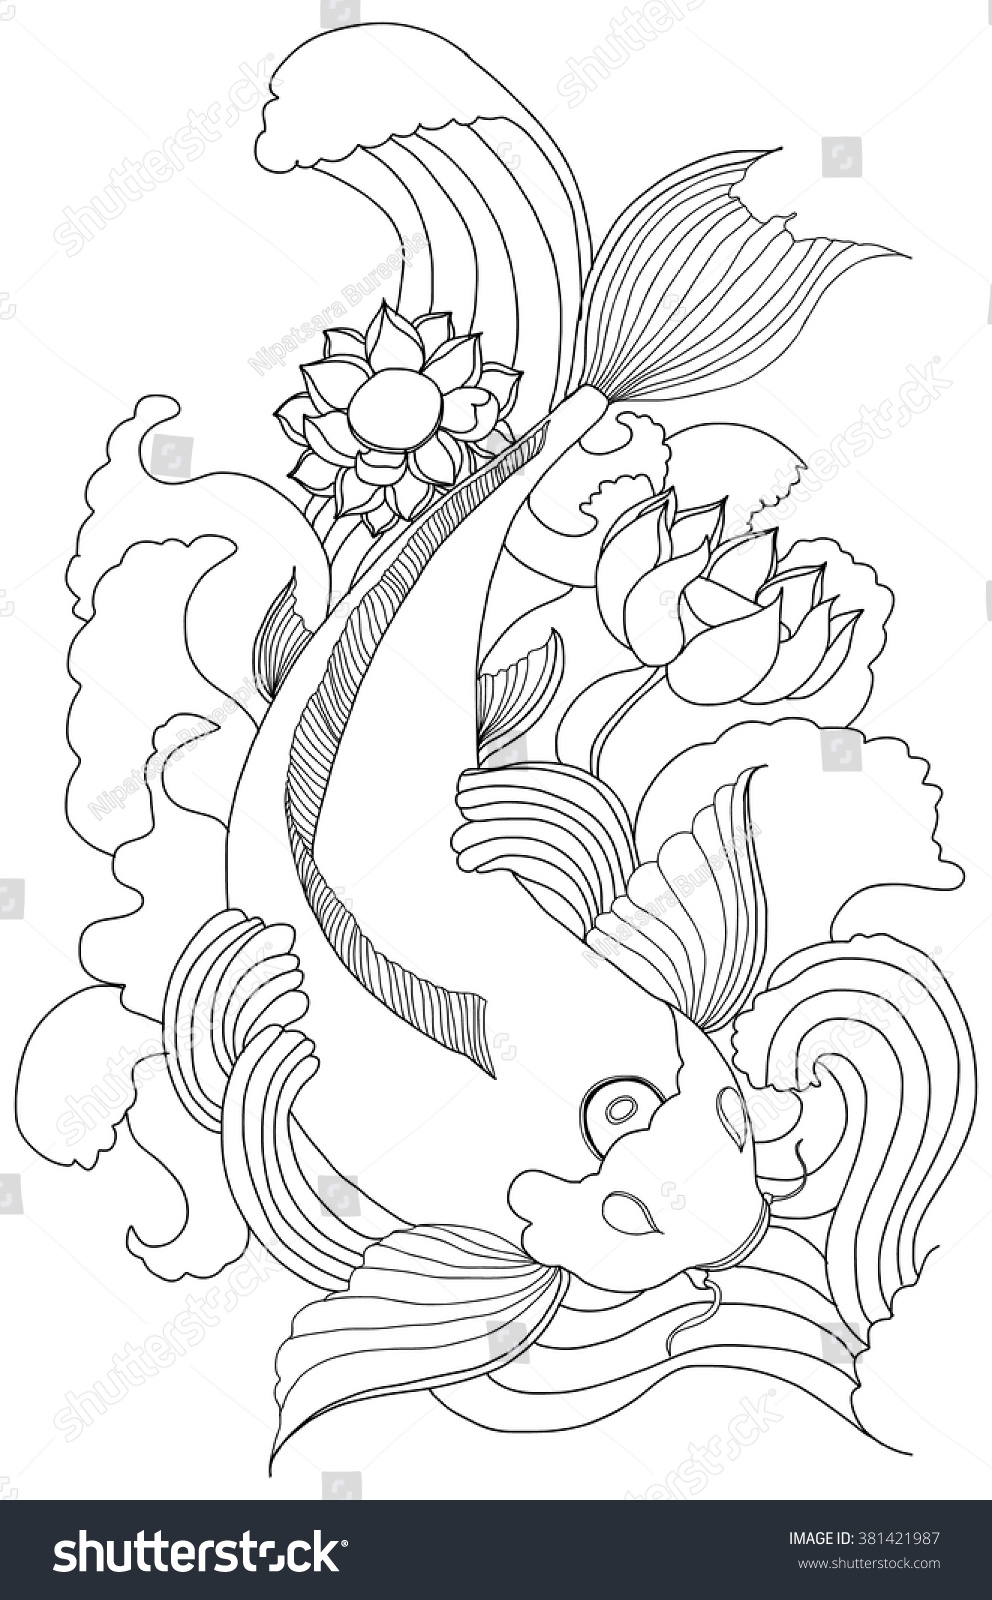 Line Drawing Koi Fish : Hand drawn outline koi fish gold stock vector